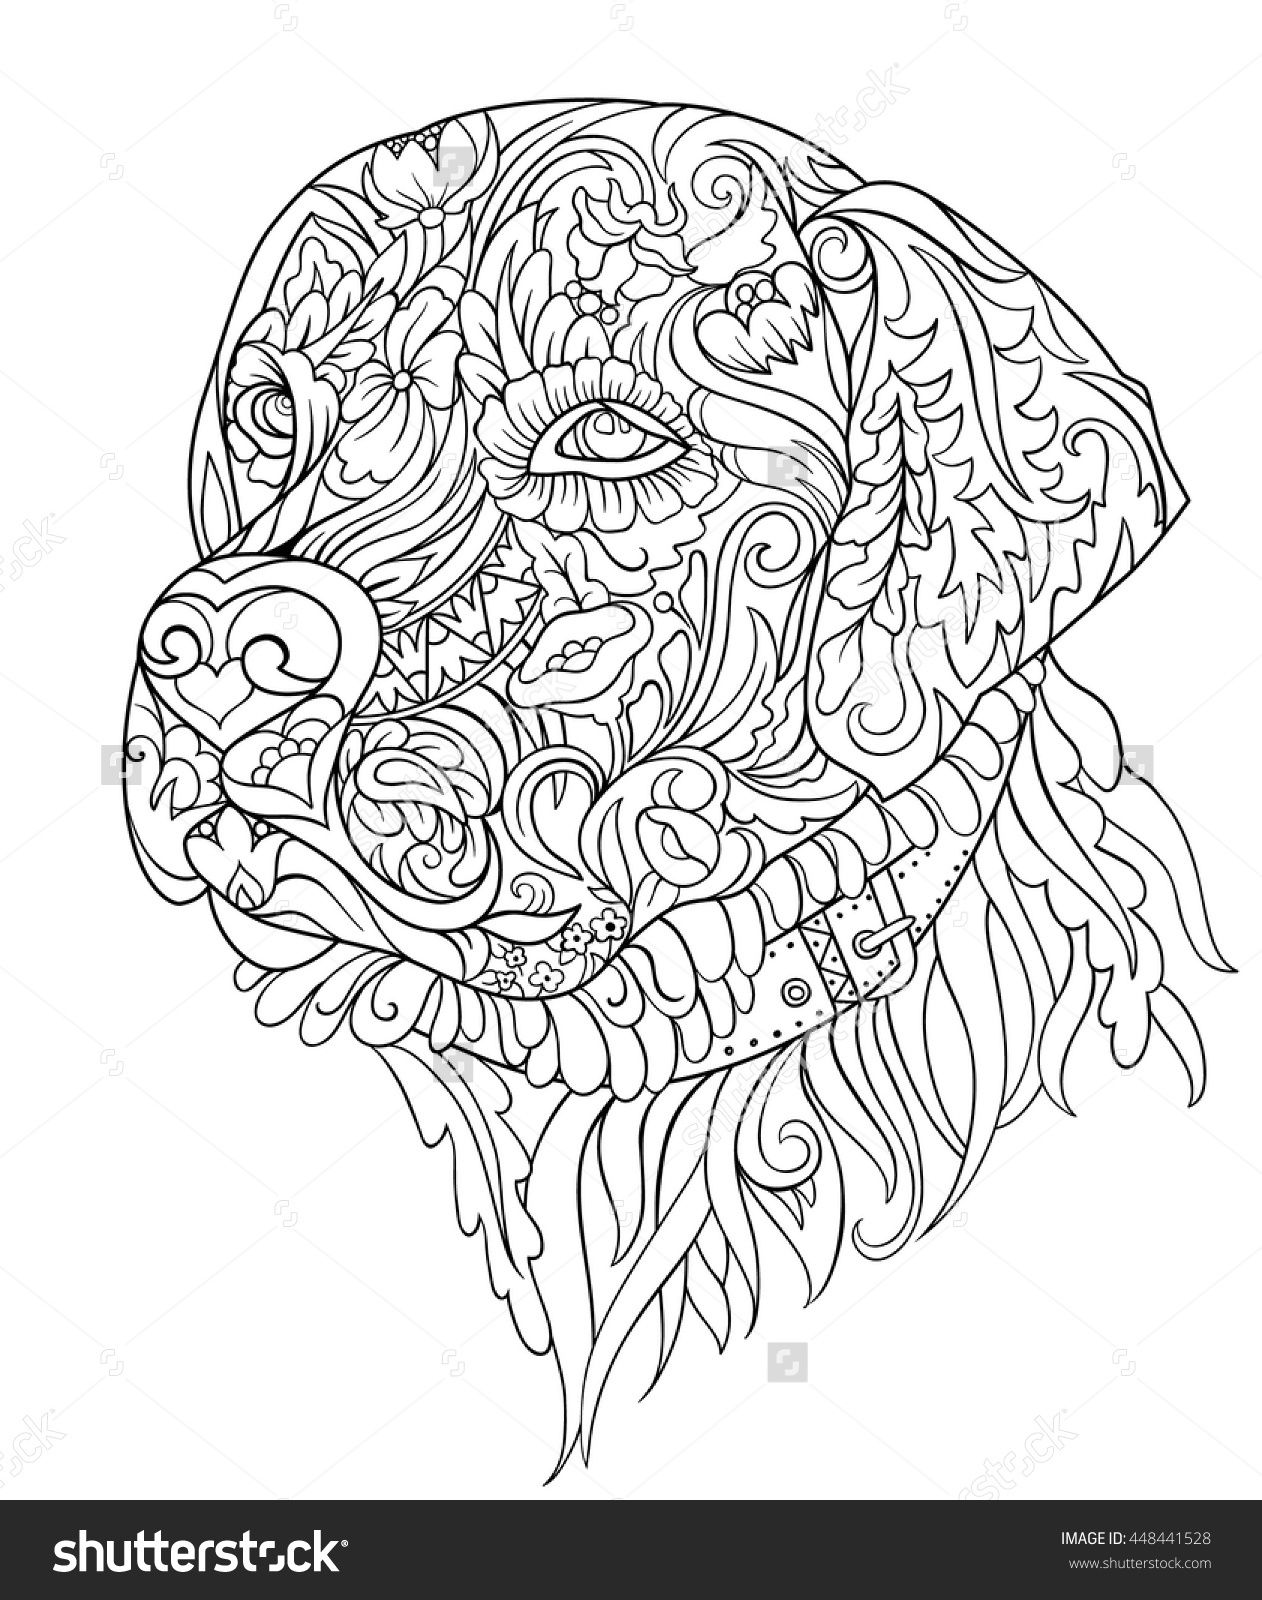 zentangle cute dog hand drawn sketch for and children